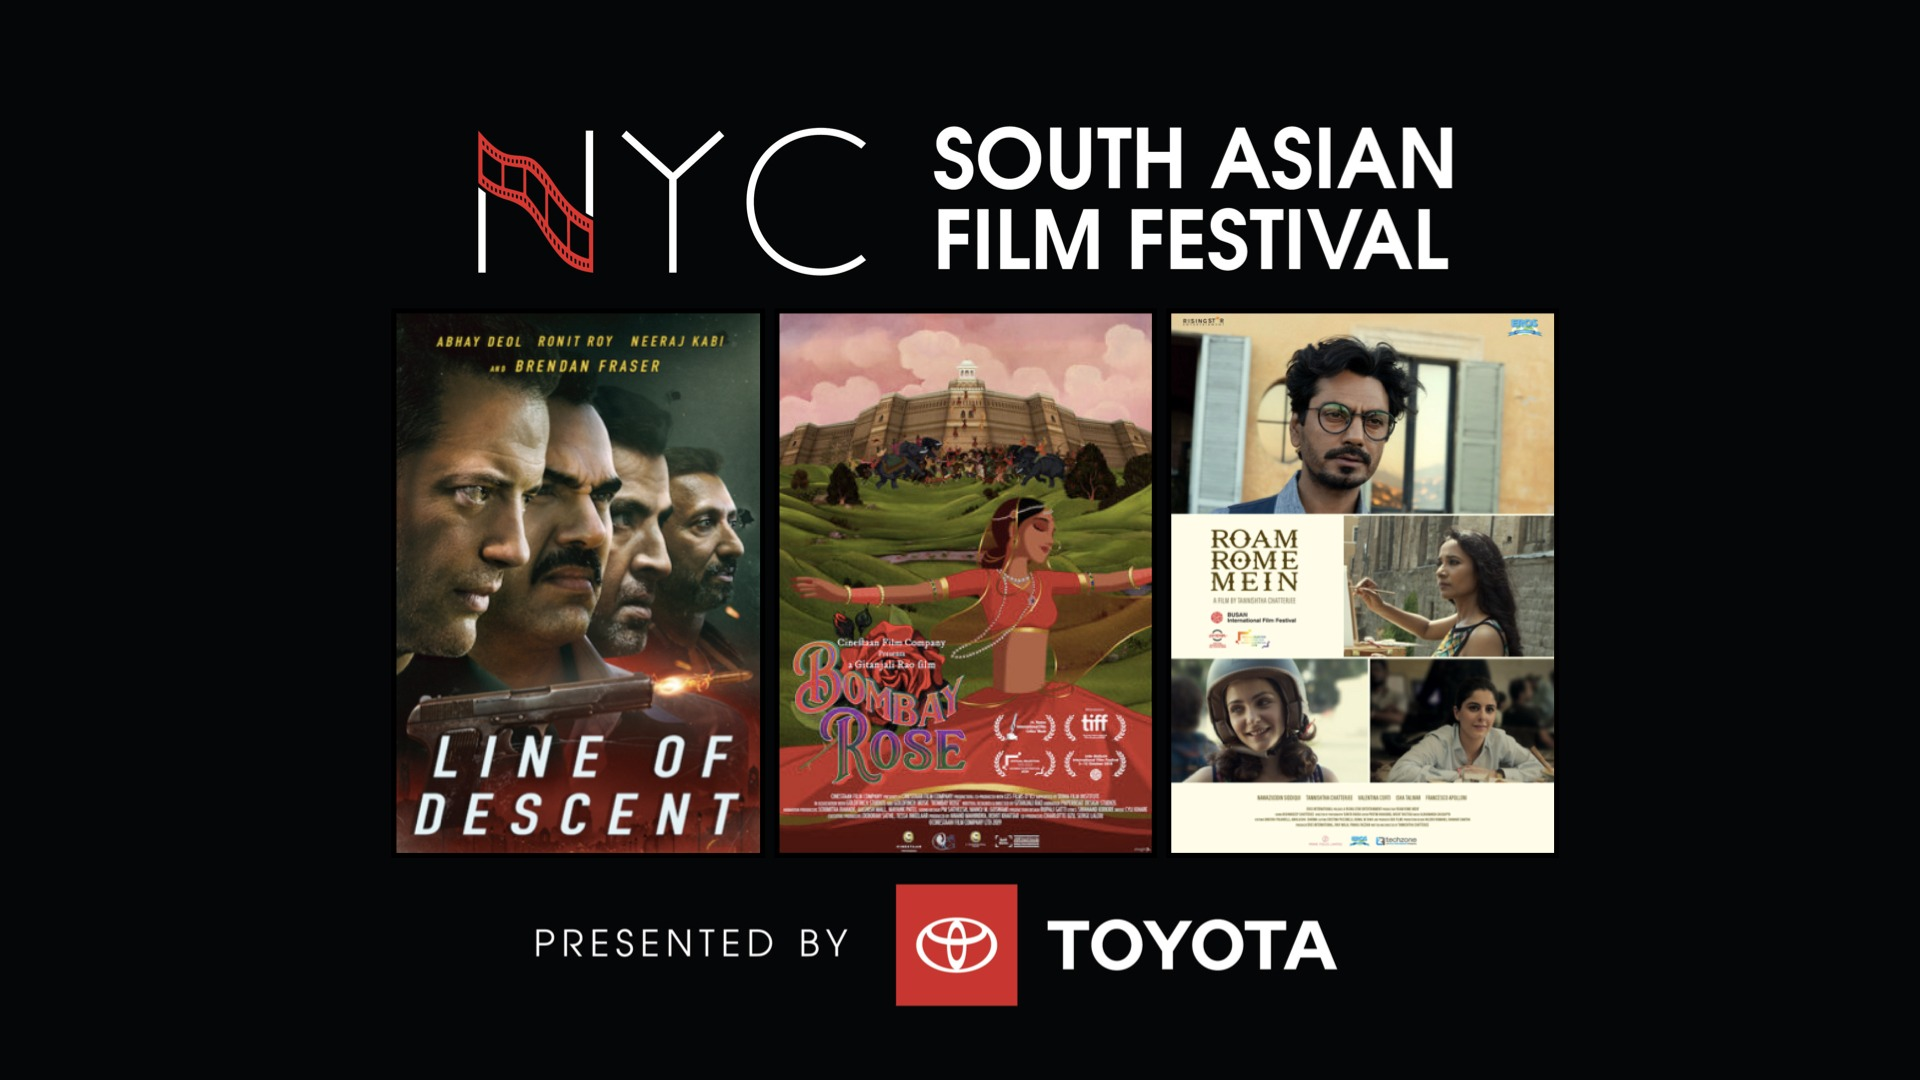 NYC South Asian FILM FESTIVAL